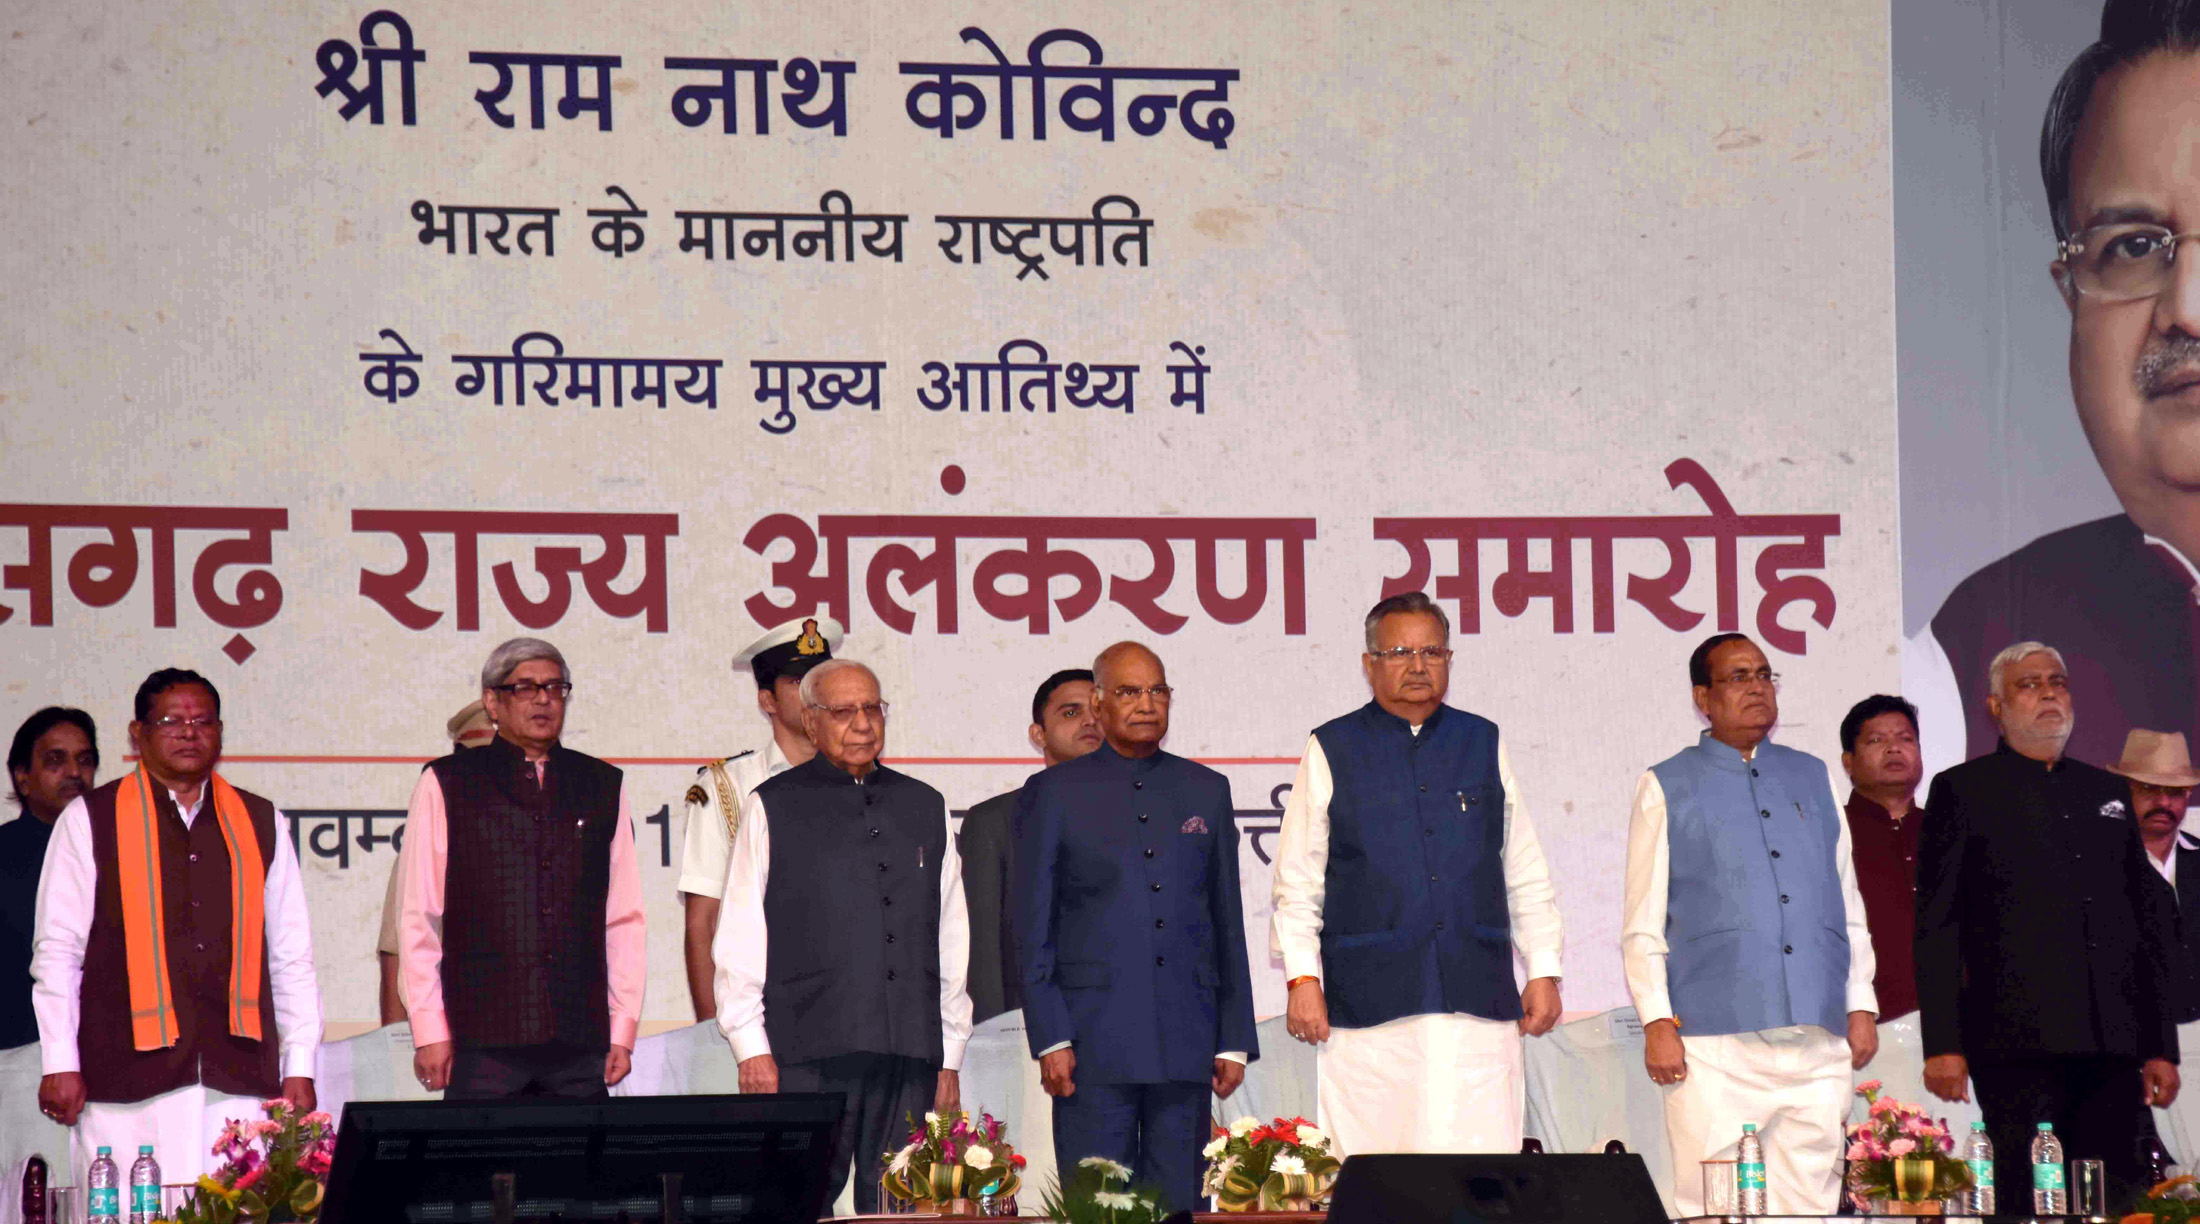 The President, Shri Ram Nath Kovind gracing the Rajya Alankaran Samaroh, at Rajyotsav Ground, at Naya Raipur, in Chhattisgarh on November 05, 2017. The Governor of Chhattisgarh, Shri Balram Dass Tandon, the Chief Minister of Chhattisgarh, Dr. Raman Singh and other dignitaries are also seen.